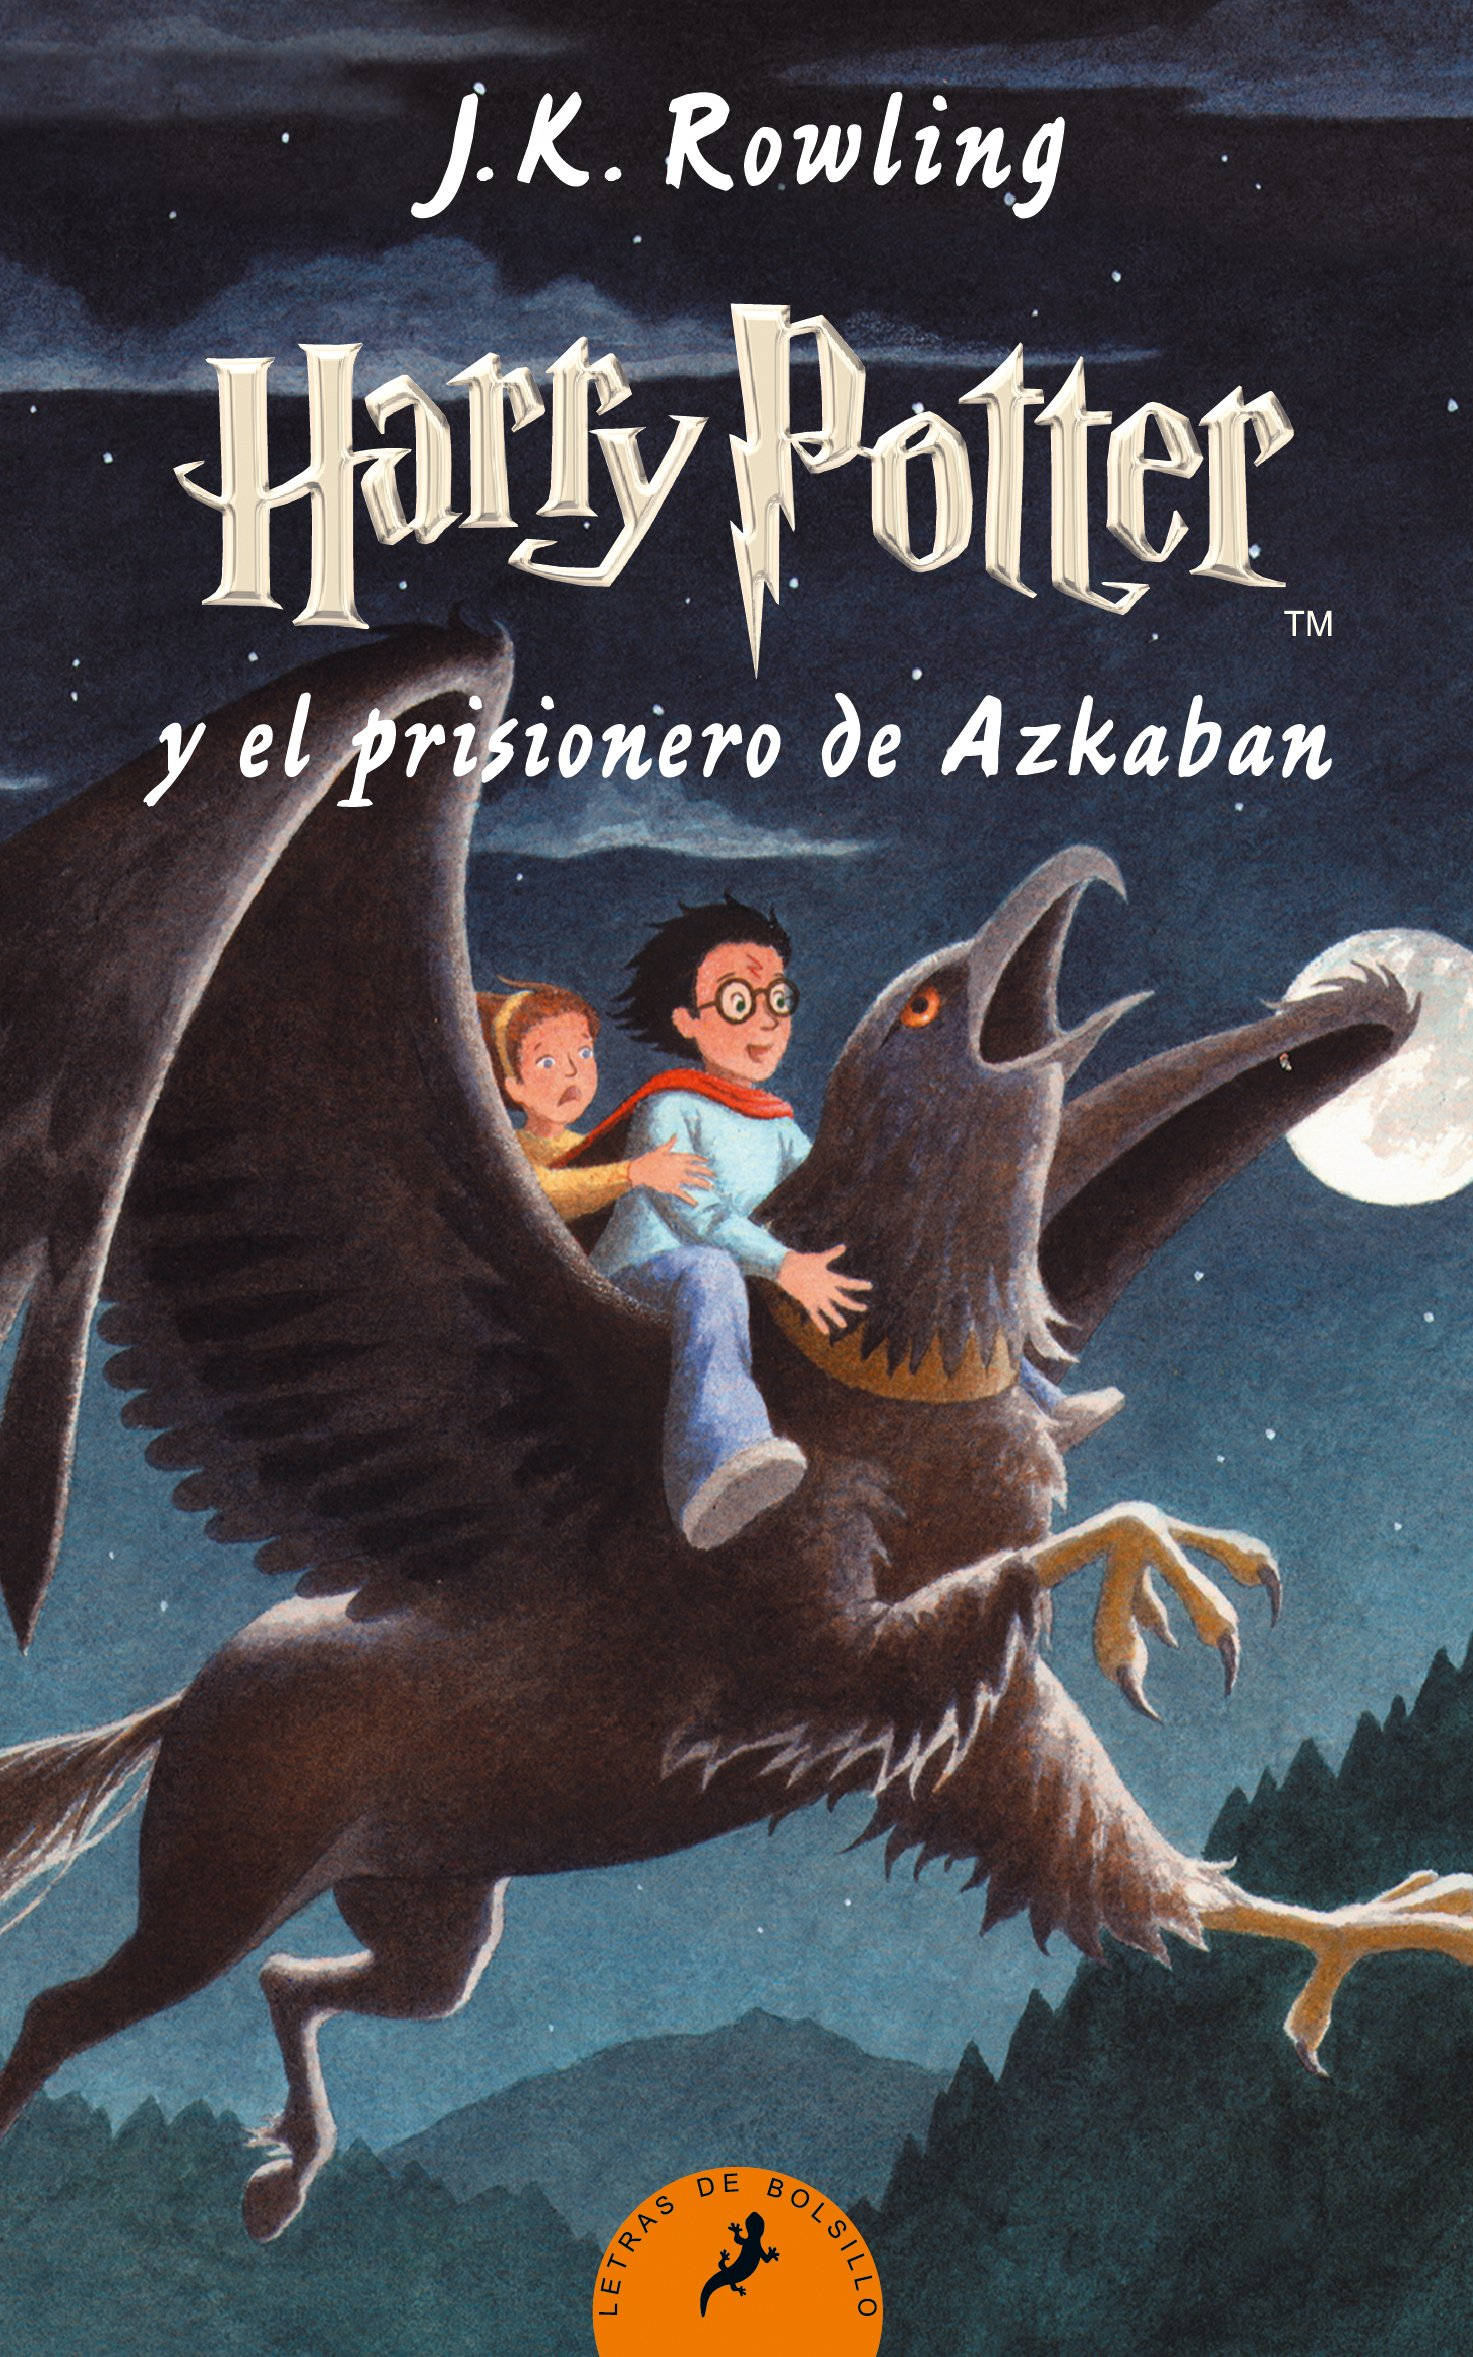 Harry Potter y el prisionero de Azkaban (Letras de Bolsillo) Tapa blanda – 3 feb 2011 J.K. Rowling Salamandra 8498383439 FICTION / General